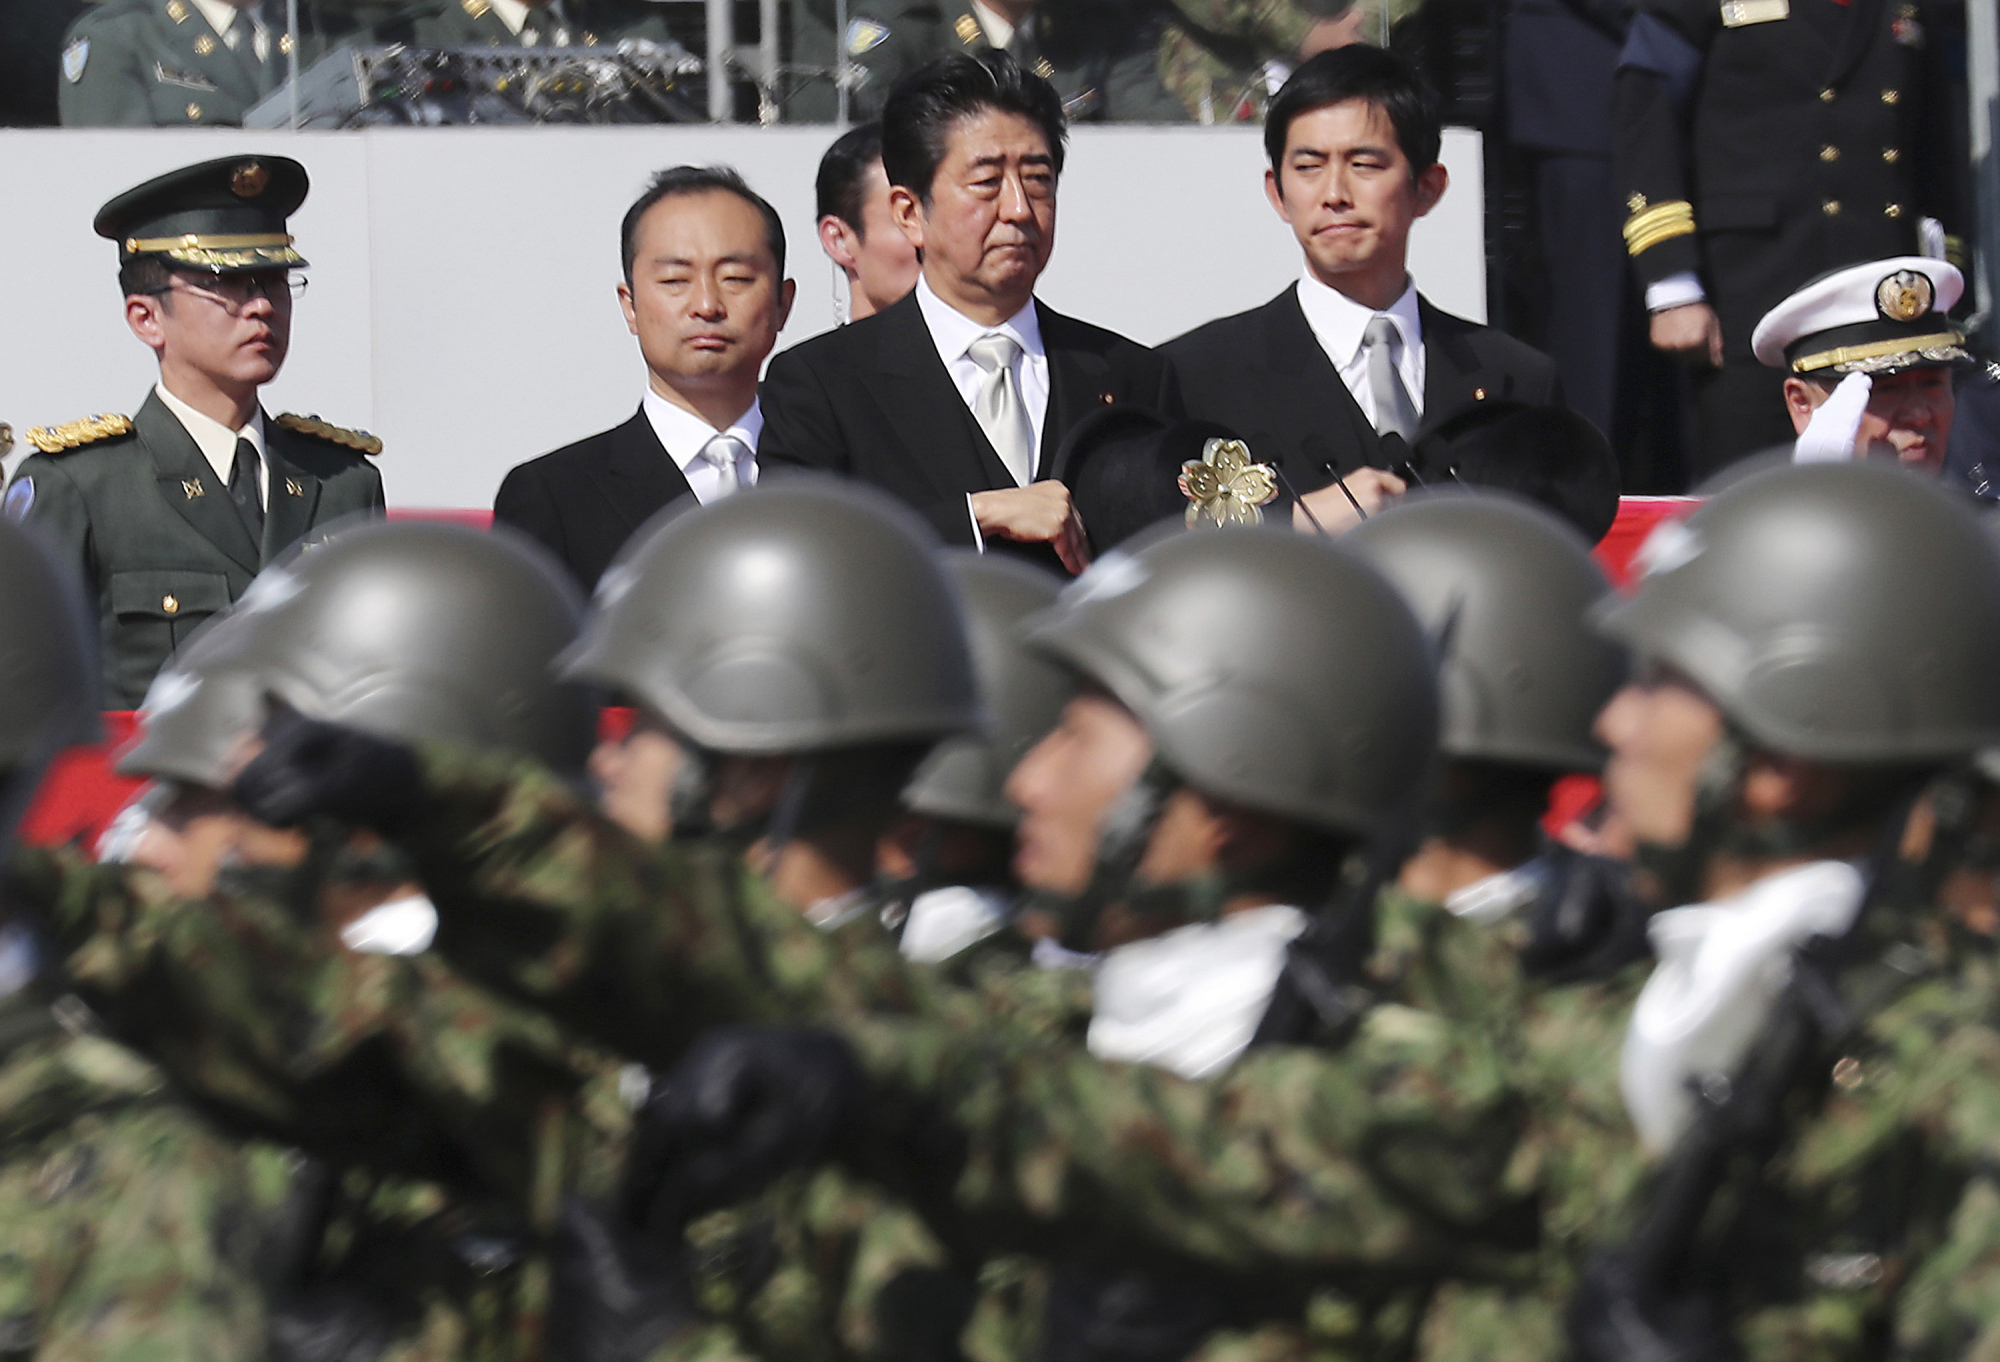 Prime Minister Shinzo Abe reviews members of the Self-Defense Forces during a parade at a military base in Asaka, Saitama Prefecture, in October. | AP